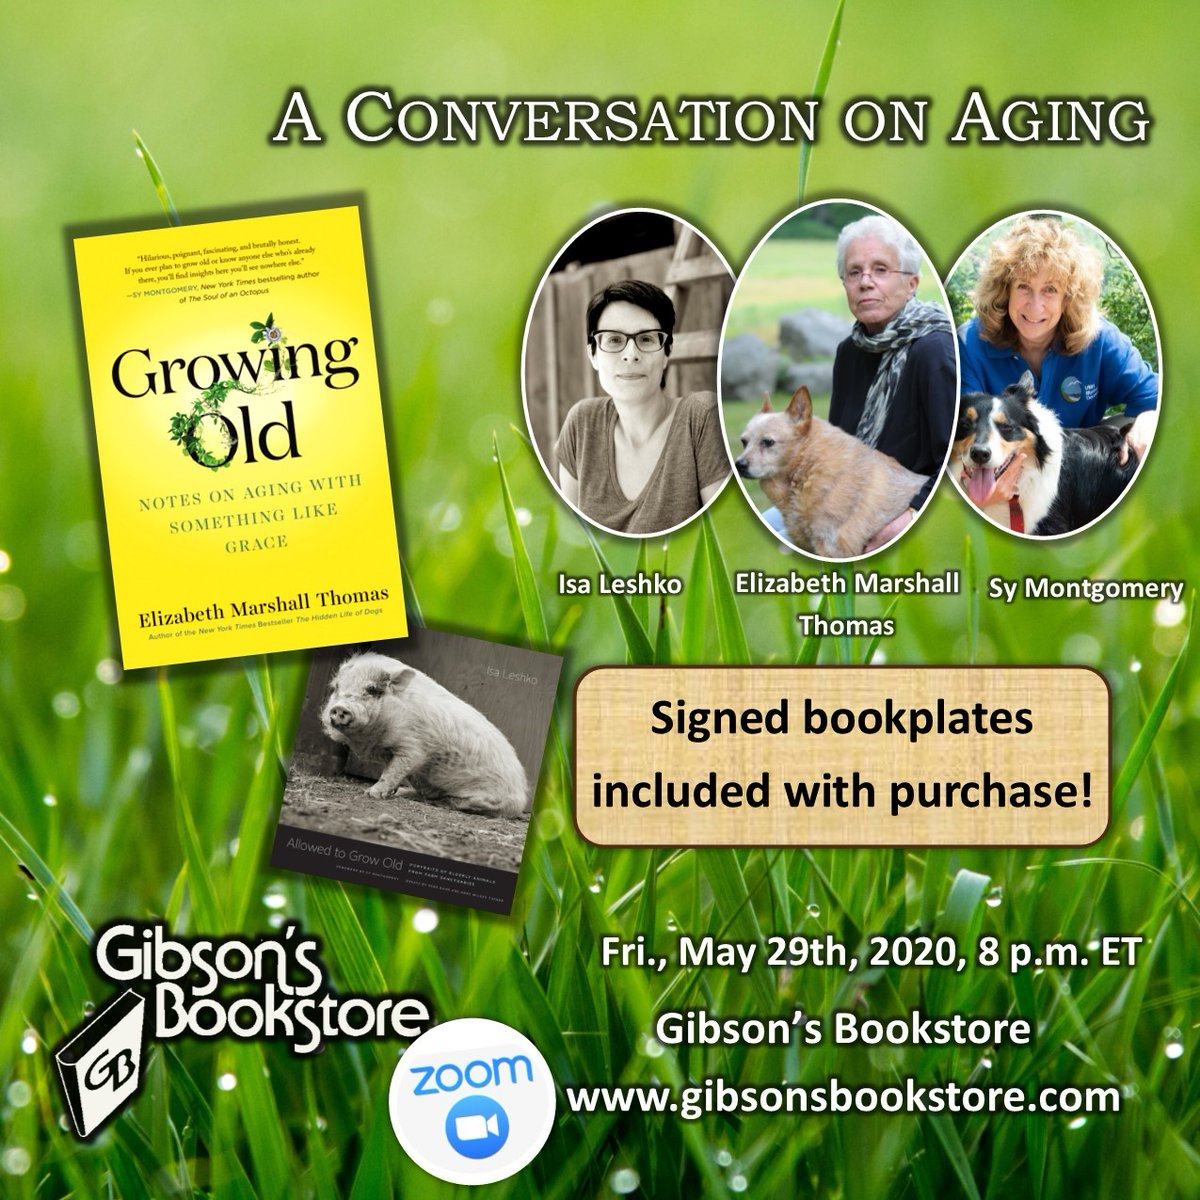 Don't miss Isa Leshko, author of ALLOWED TO GROW OLD, in conversation with Sy Montgomery and Elizabeth Marshall Thomas on 5/29, organized by @GibsonsConcord. Register: https://bit.ly/2AJ2dMo @IsaLeshkopic.twitter.com/pztH1RTKew